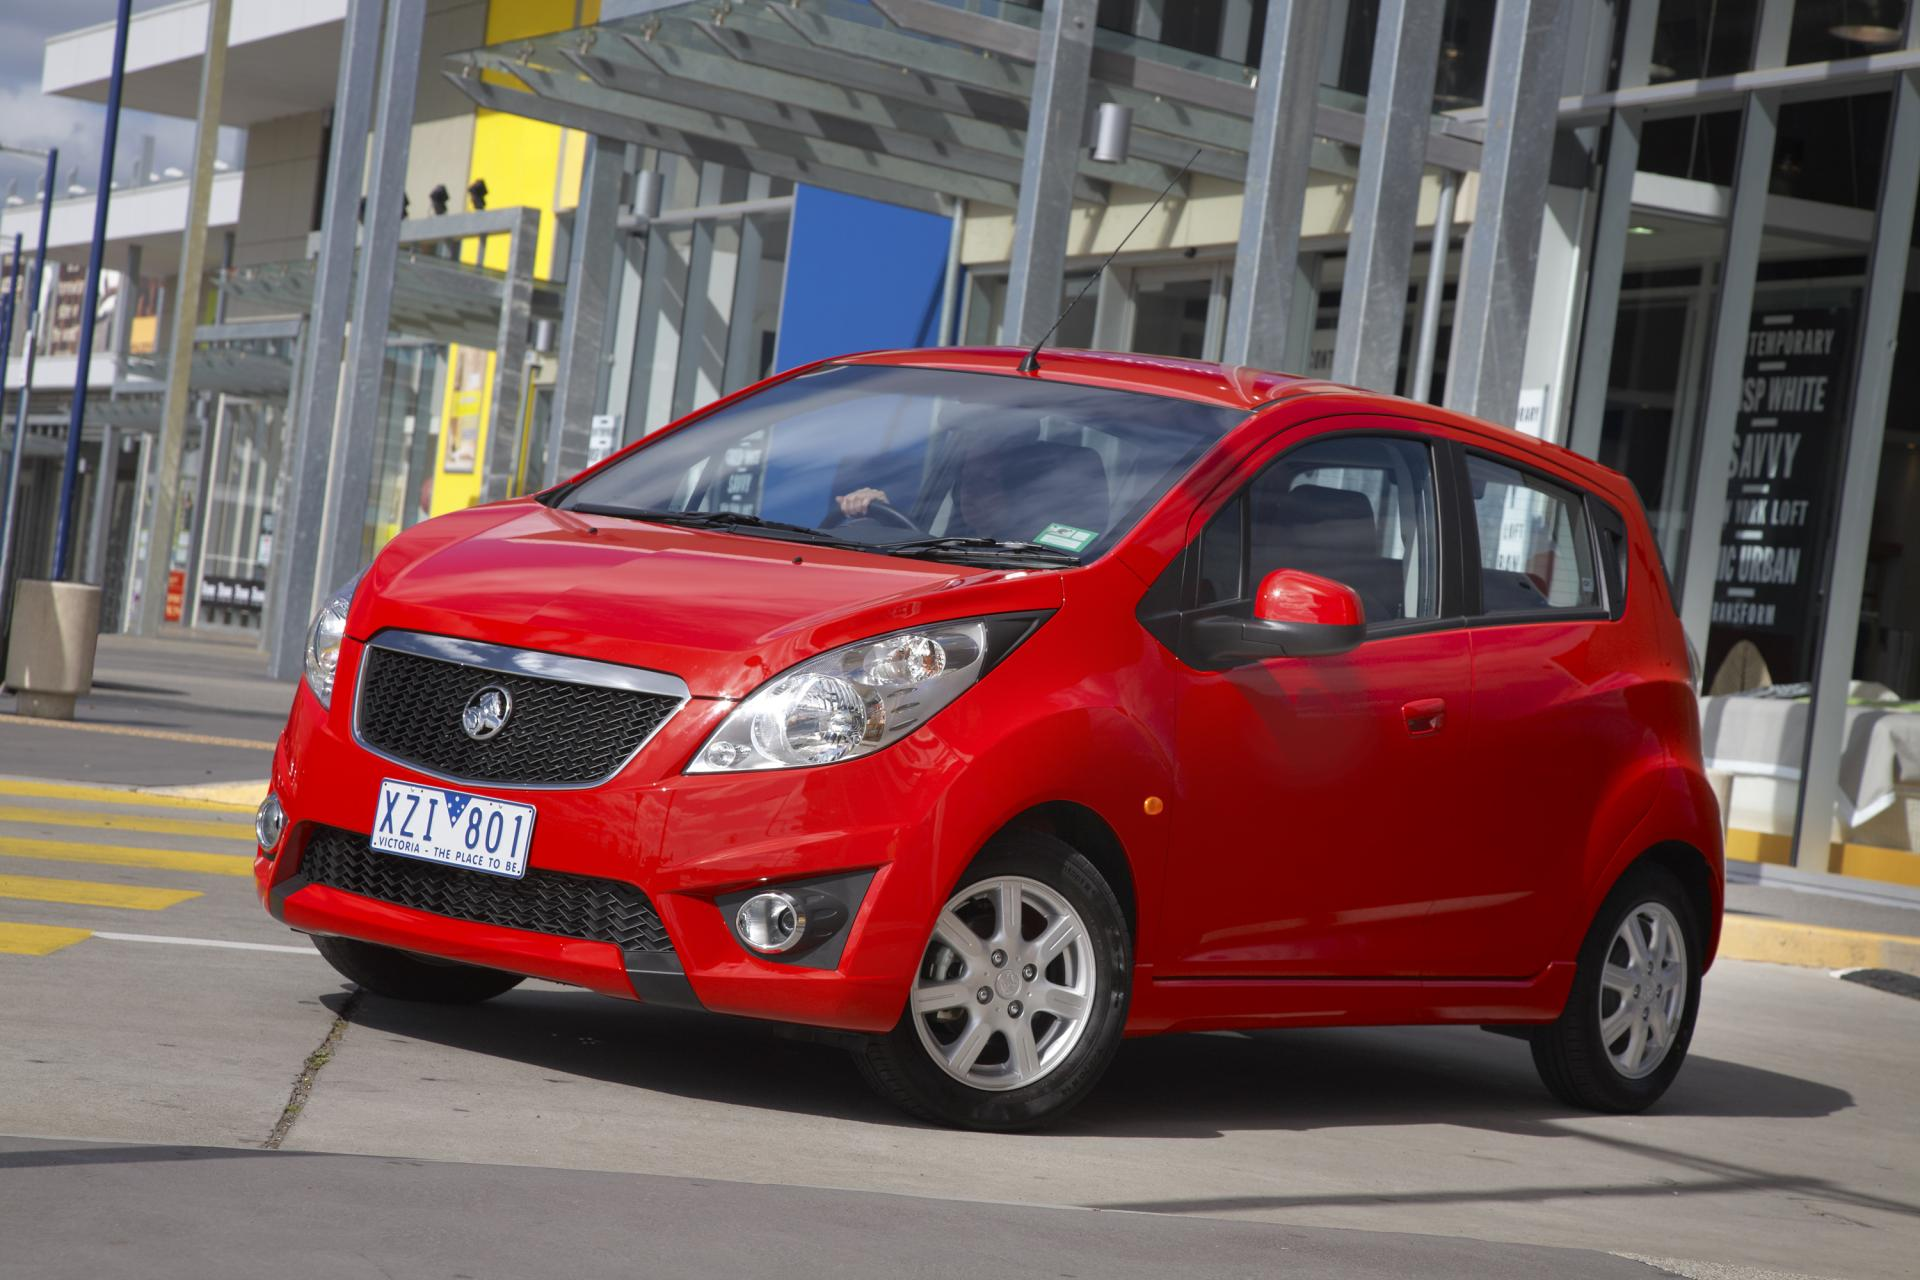 2011 Holden Barina Spark Wallpaper And Image Gallery